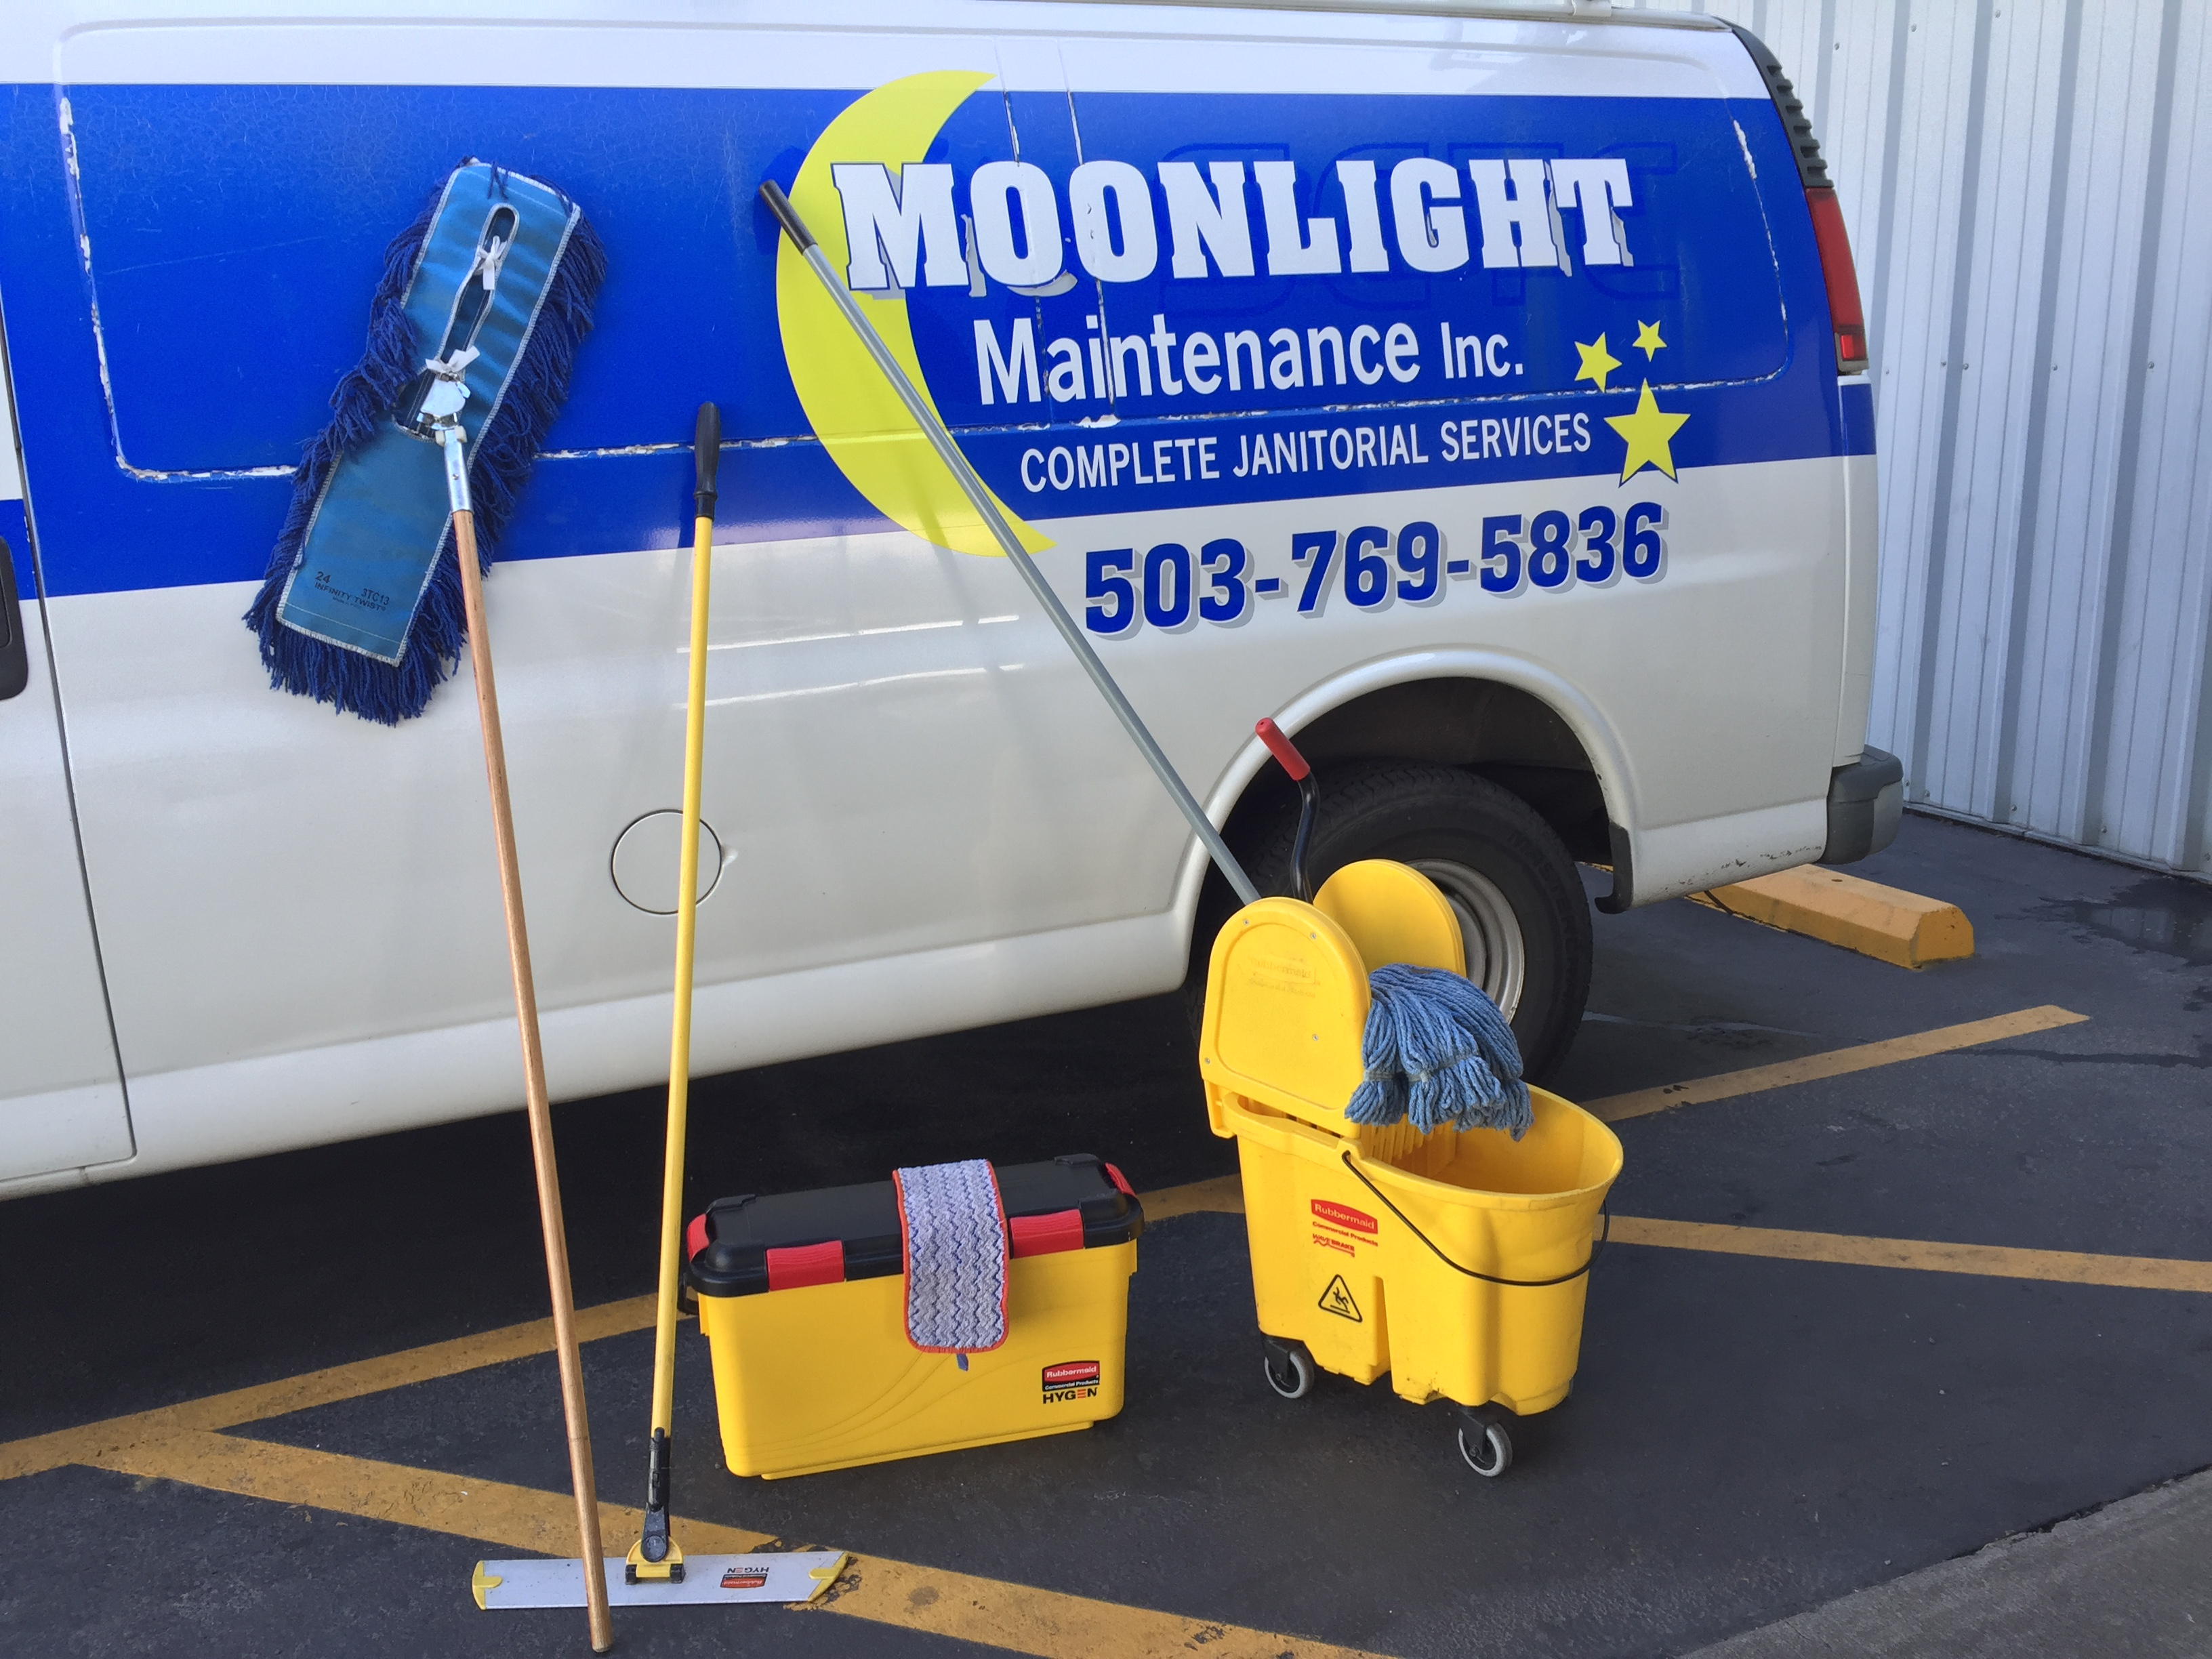 moonlight maintenance,janitorial service,commercial cleaning,residential cleaning